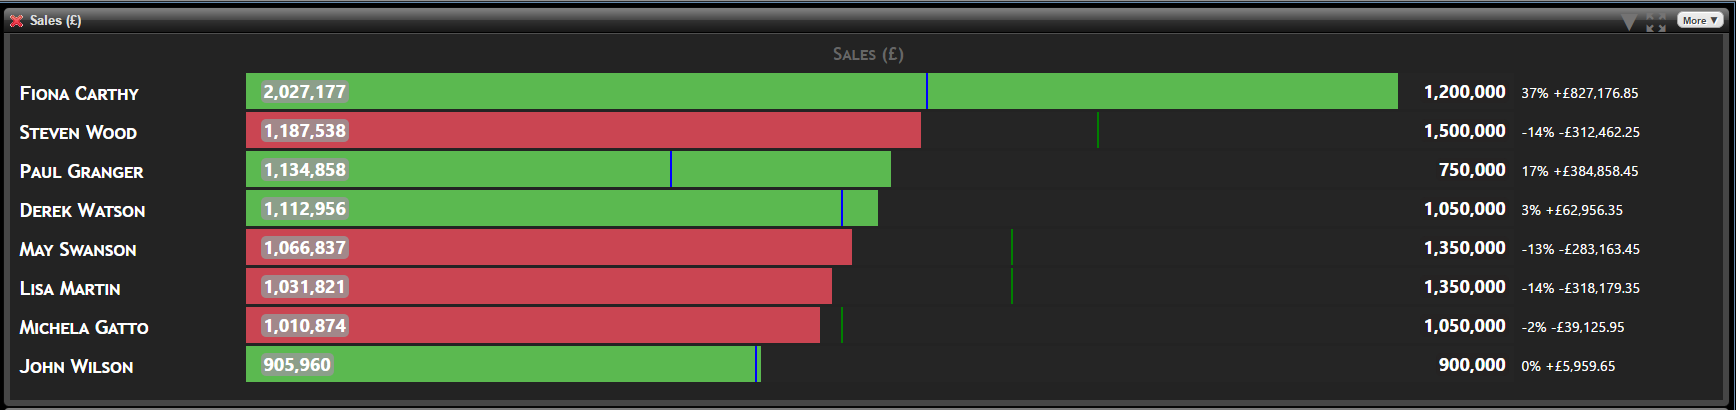 sales leaderboard bar chart showing each team member sales versus target